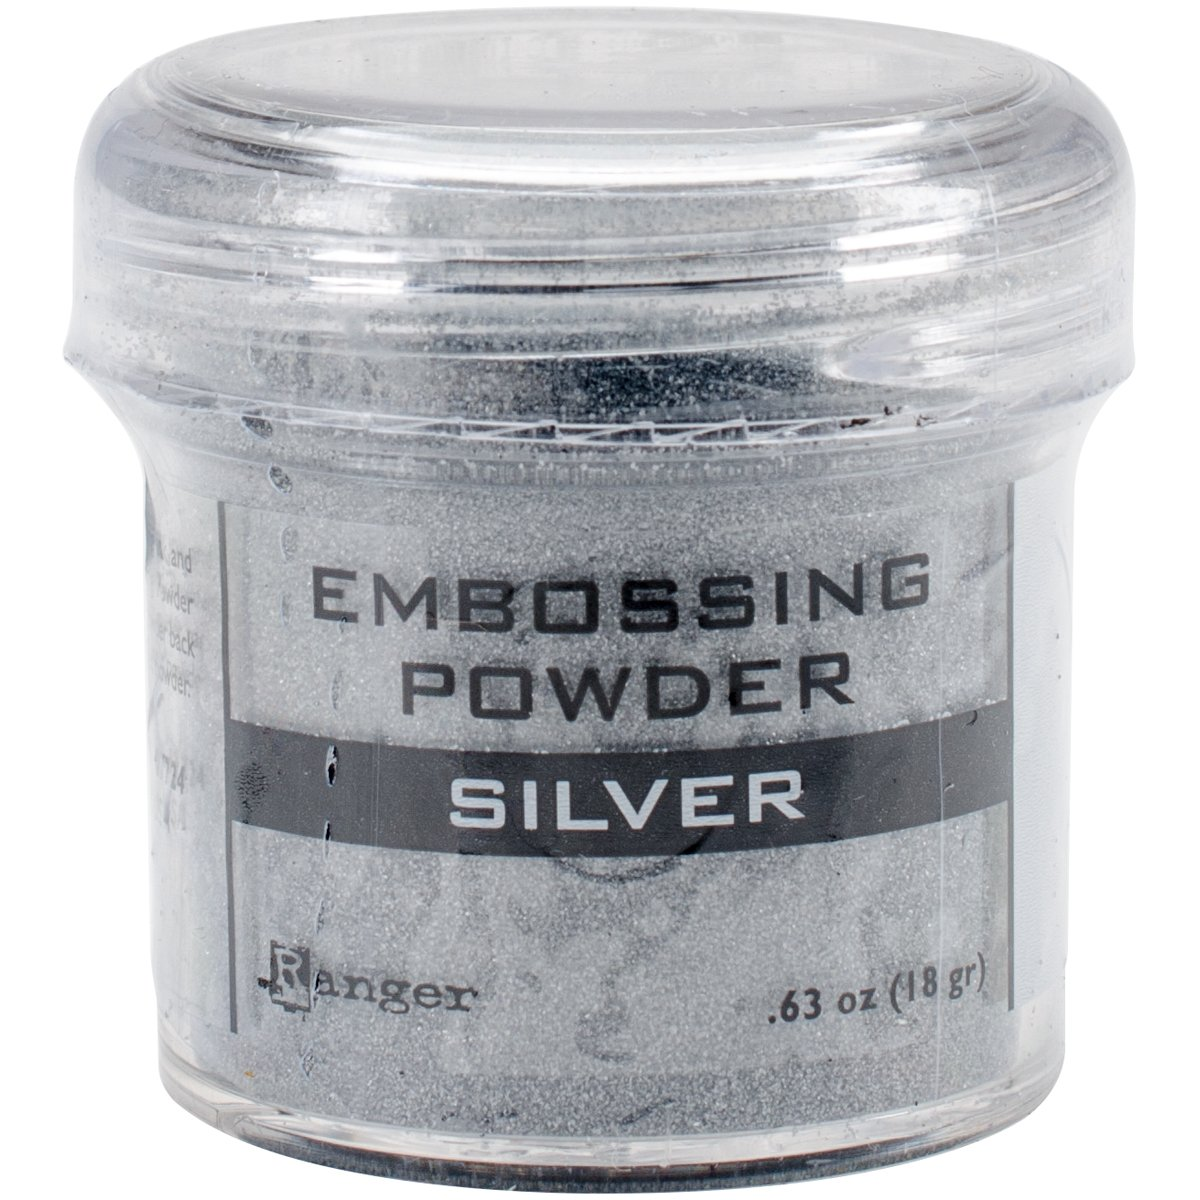 Ranger Silver-Embossing Powder, Acrylic, Multicolour EPJ-37361